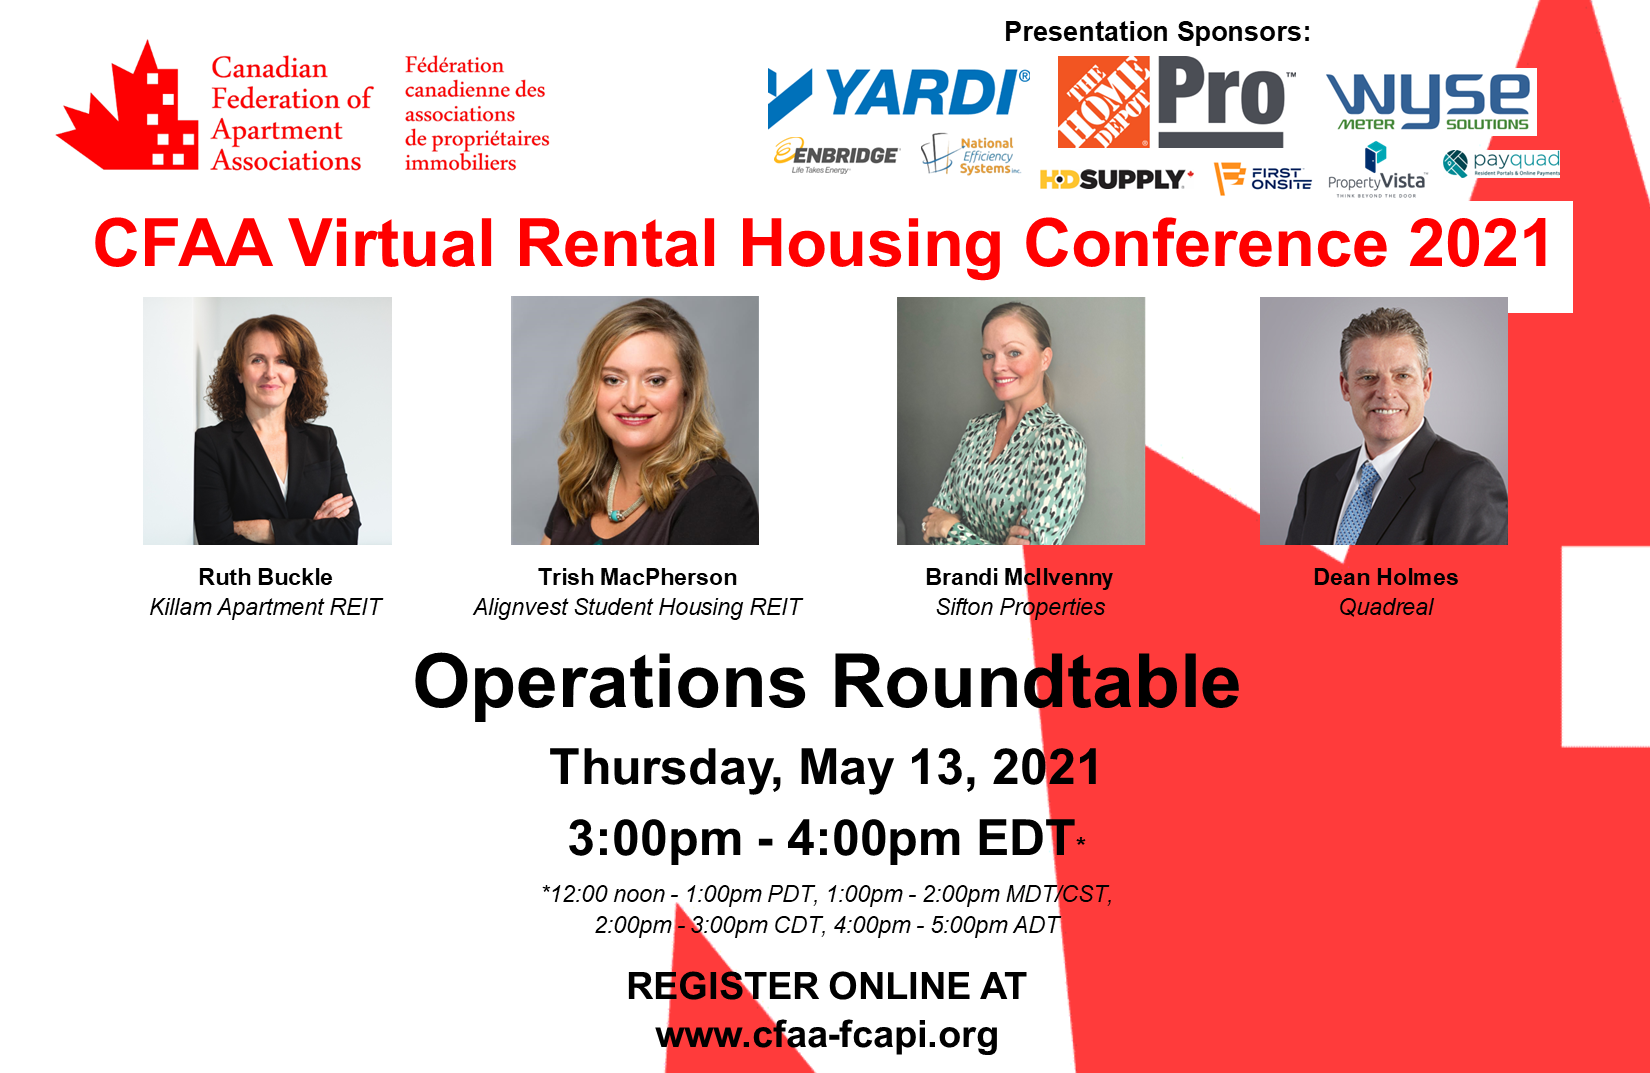 REGISTER FOR THE OPERATIONS ROUNDTABLE